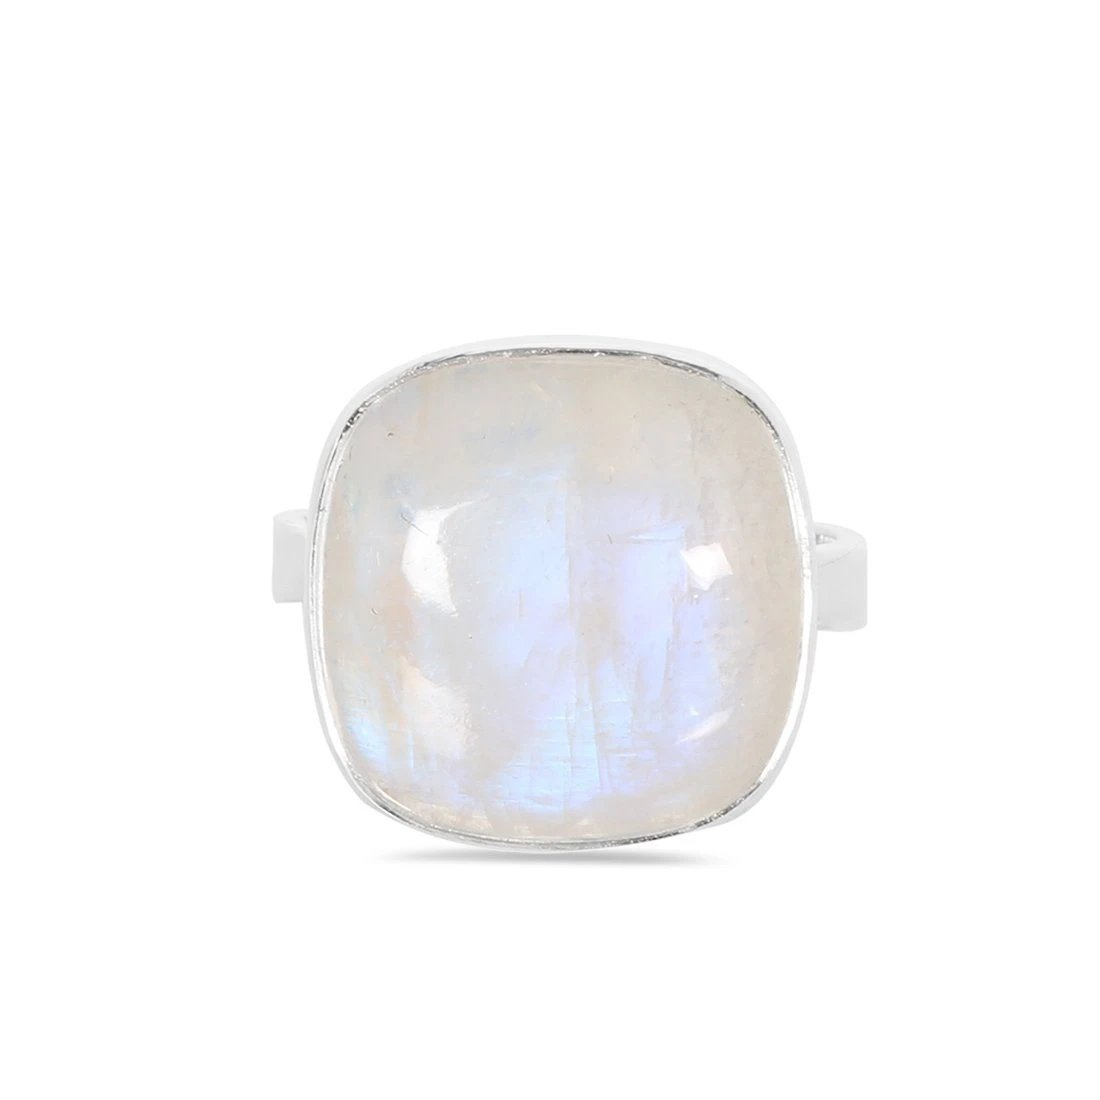 Moonstone Ring-Enchantress Moonstone Ring 925 SILVER & MOONSTONE 10 Silver Cushion-19x19 mm